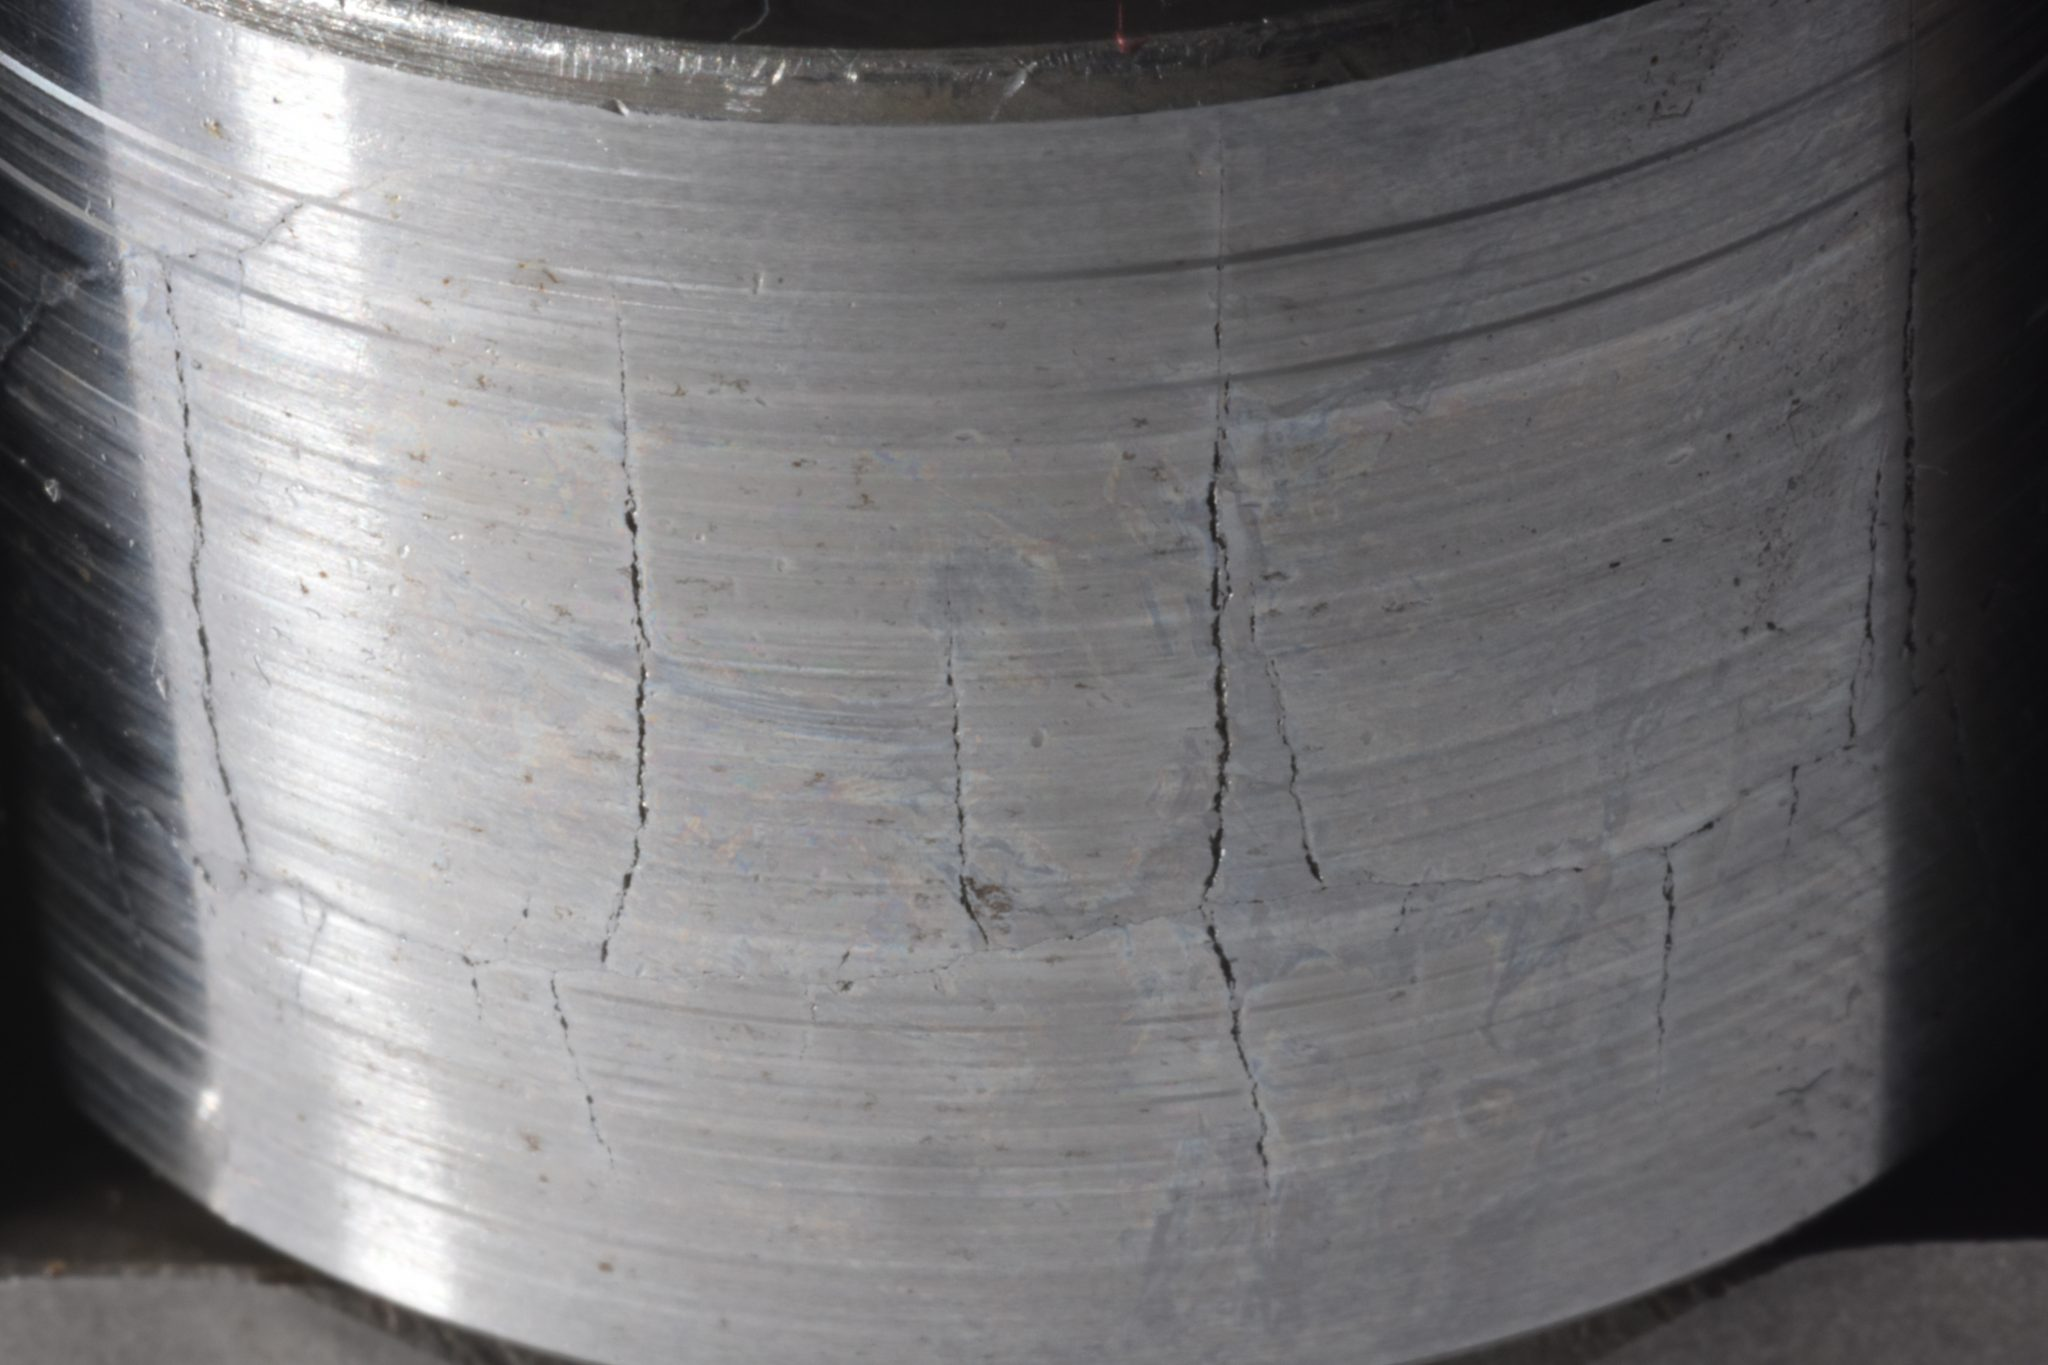 Roller bearing failure analysis